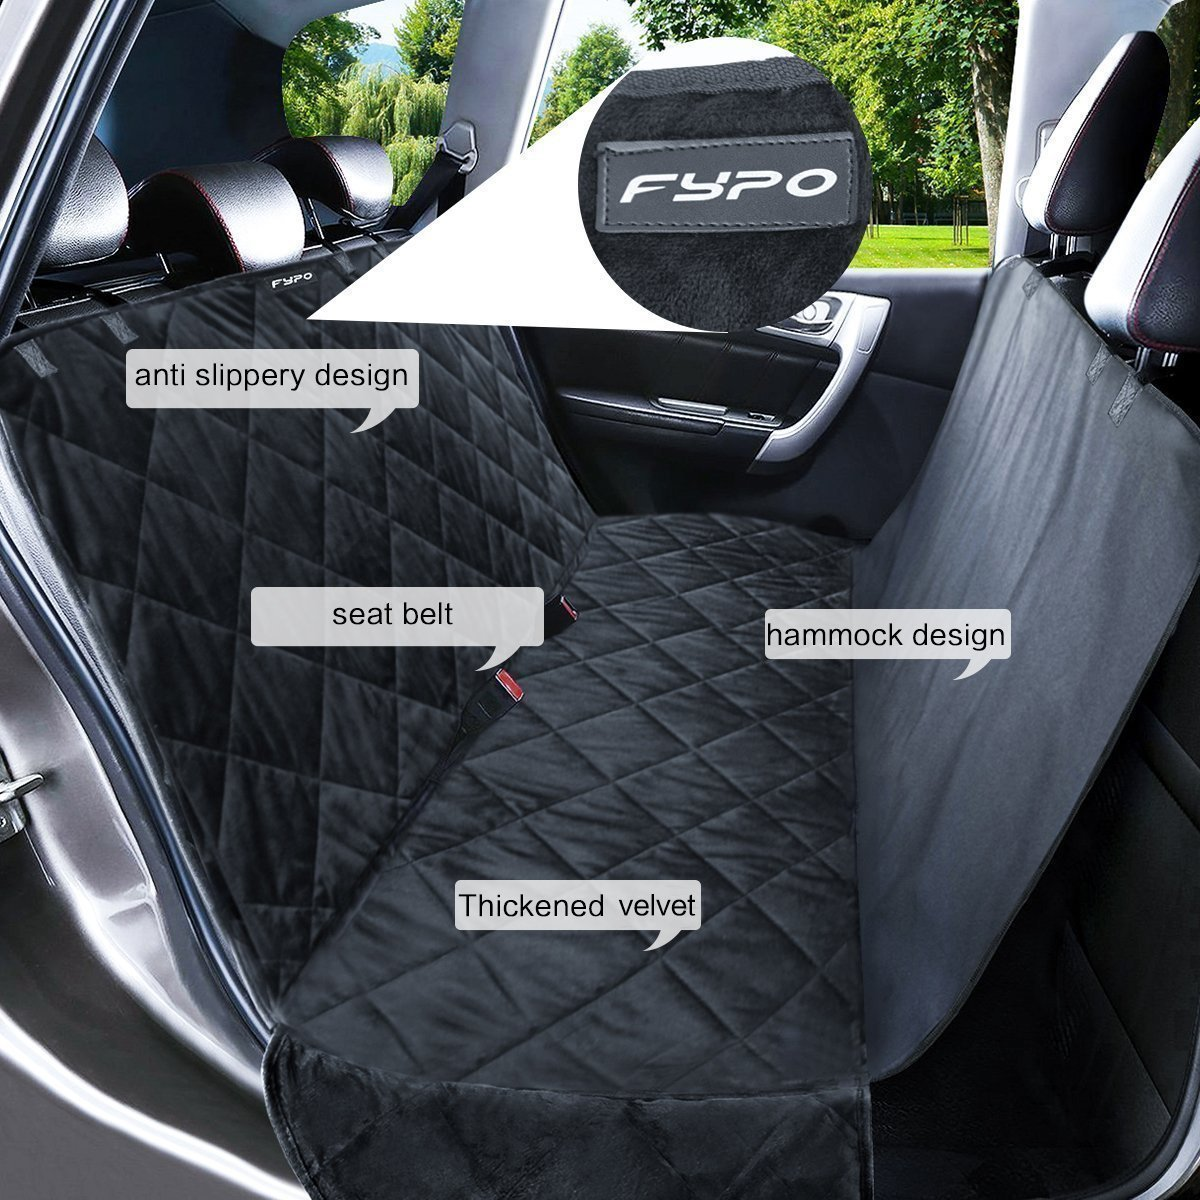 Fypo Dog Car Seat Cover Waterproof Pet Car Hammock with Soft Velvet 65 x 55 Scratch-proof and Non-slip Backseat Protector for Cars//Trucks//SUV